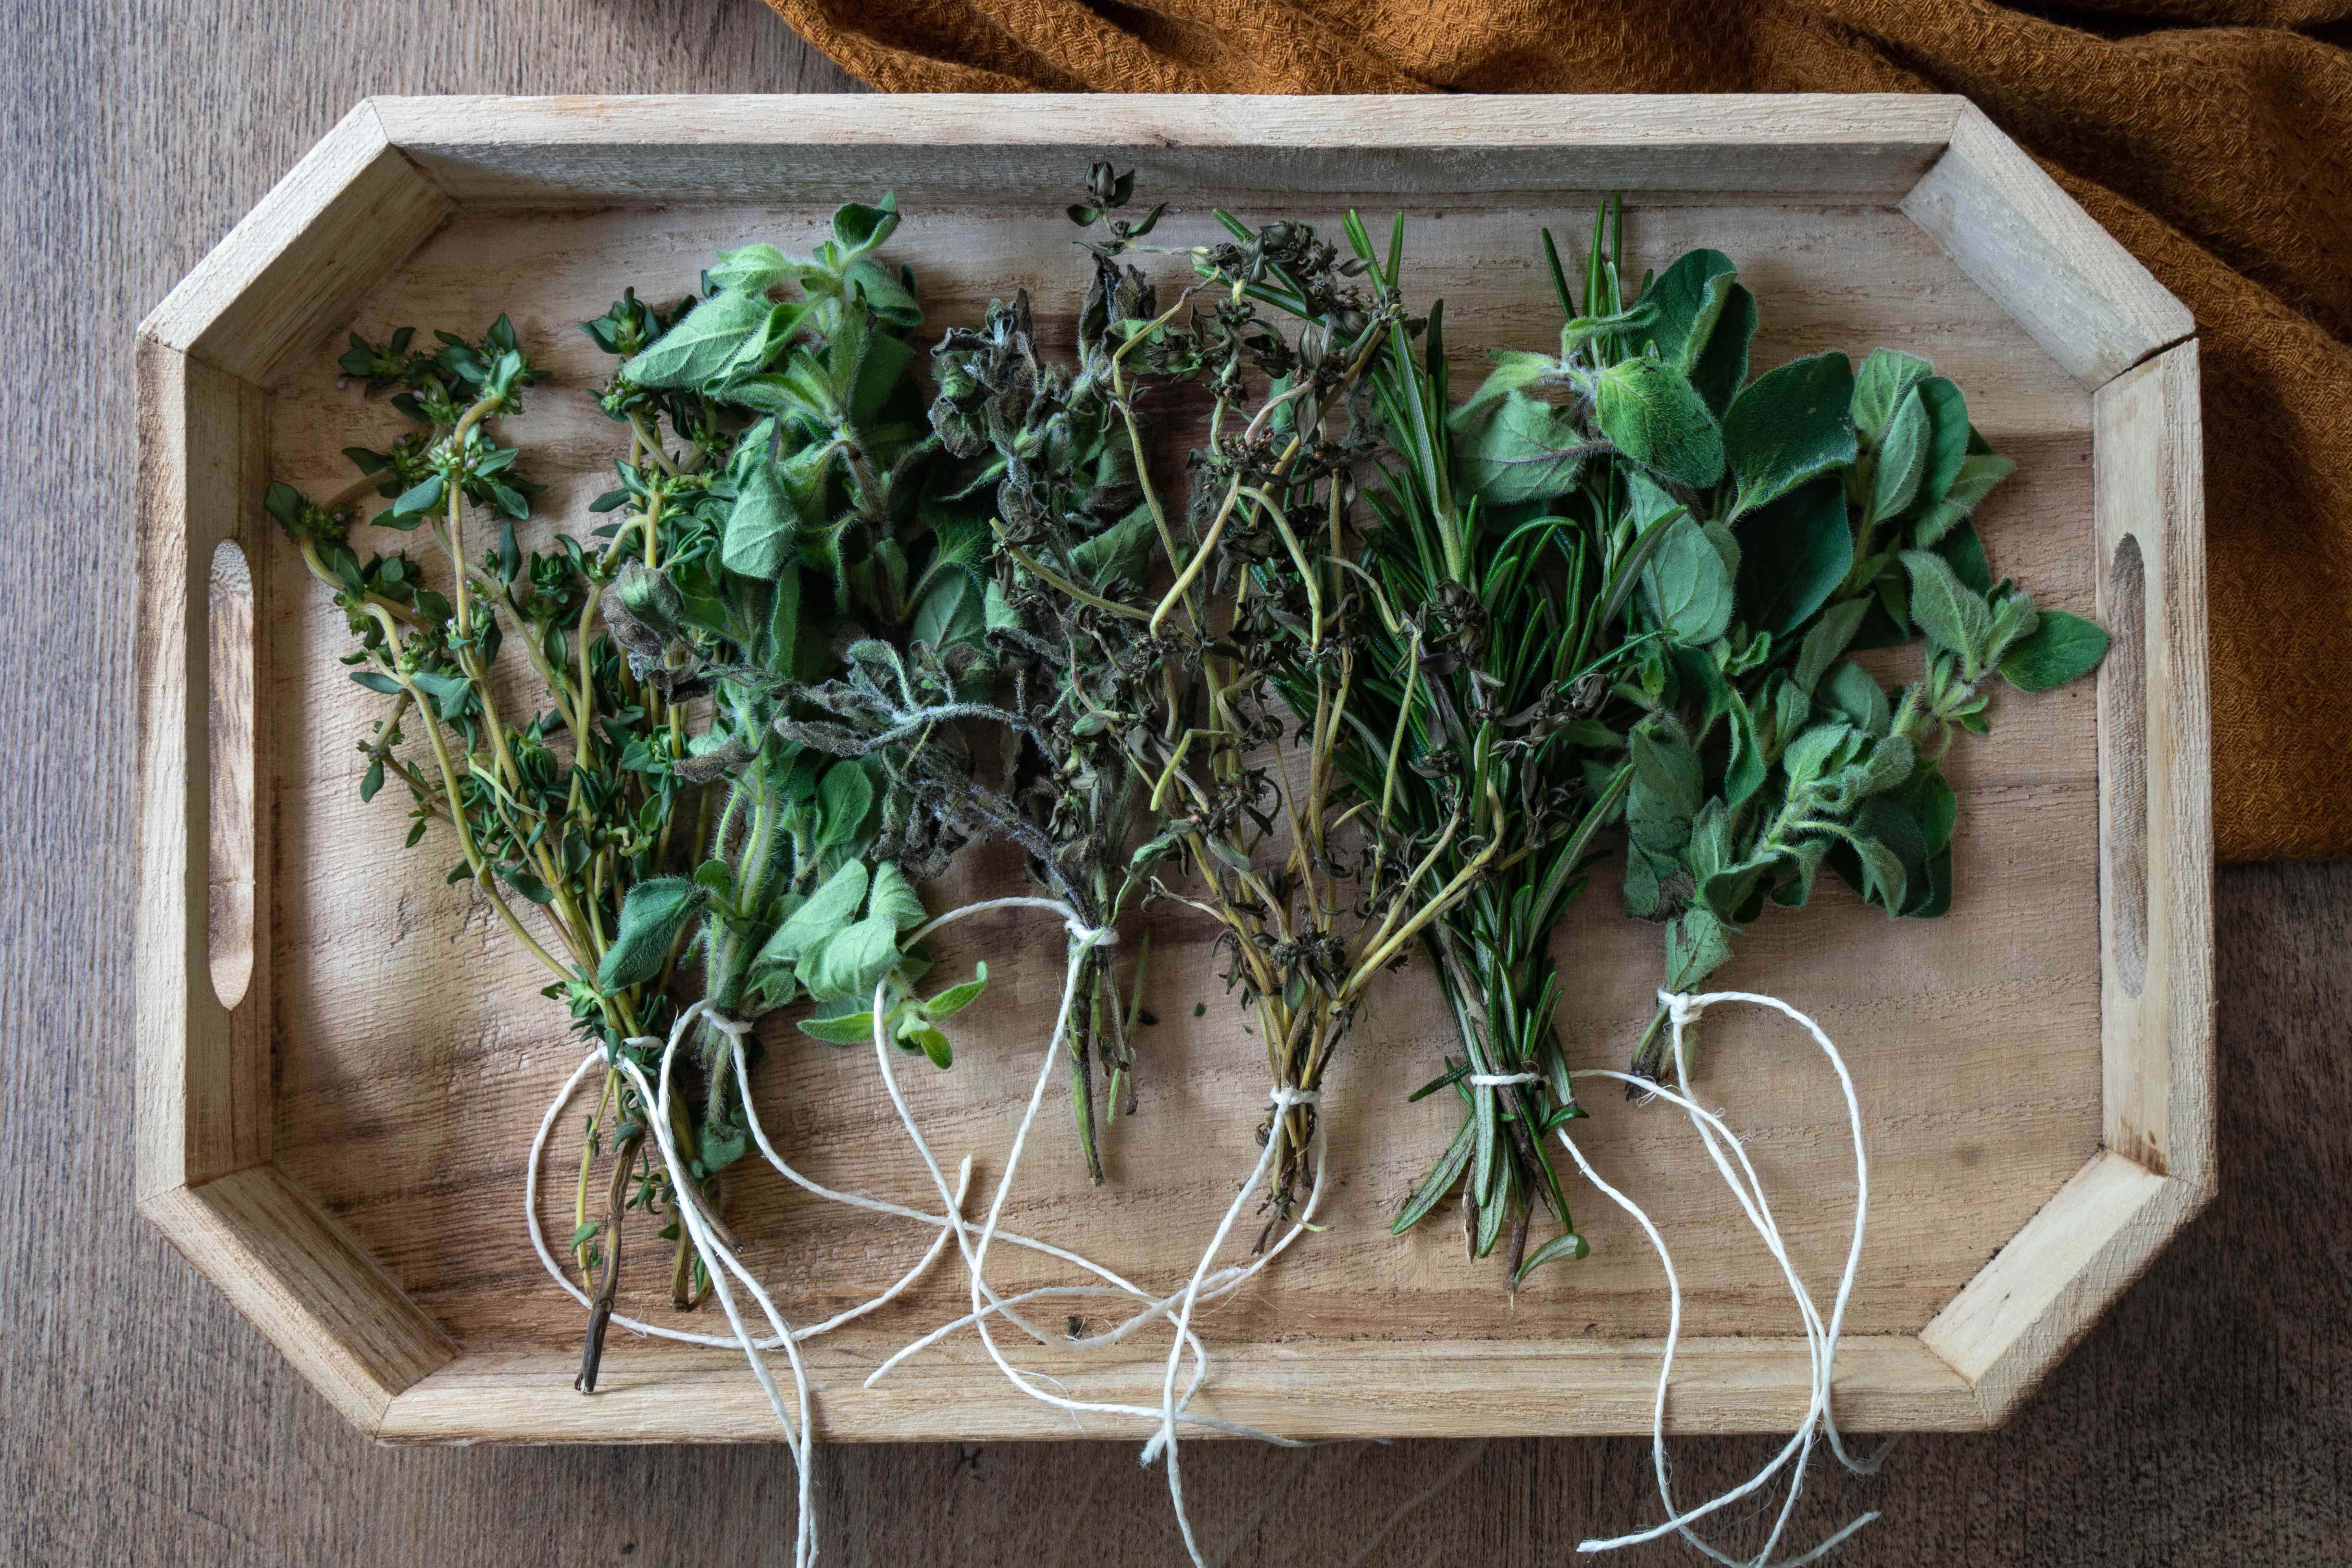 various dried herbs tied with white twine on blonde wooden tray